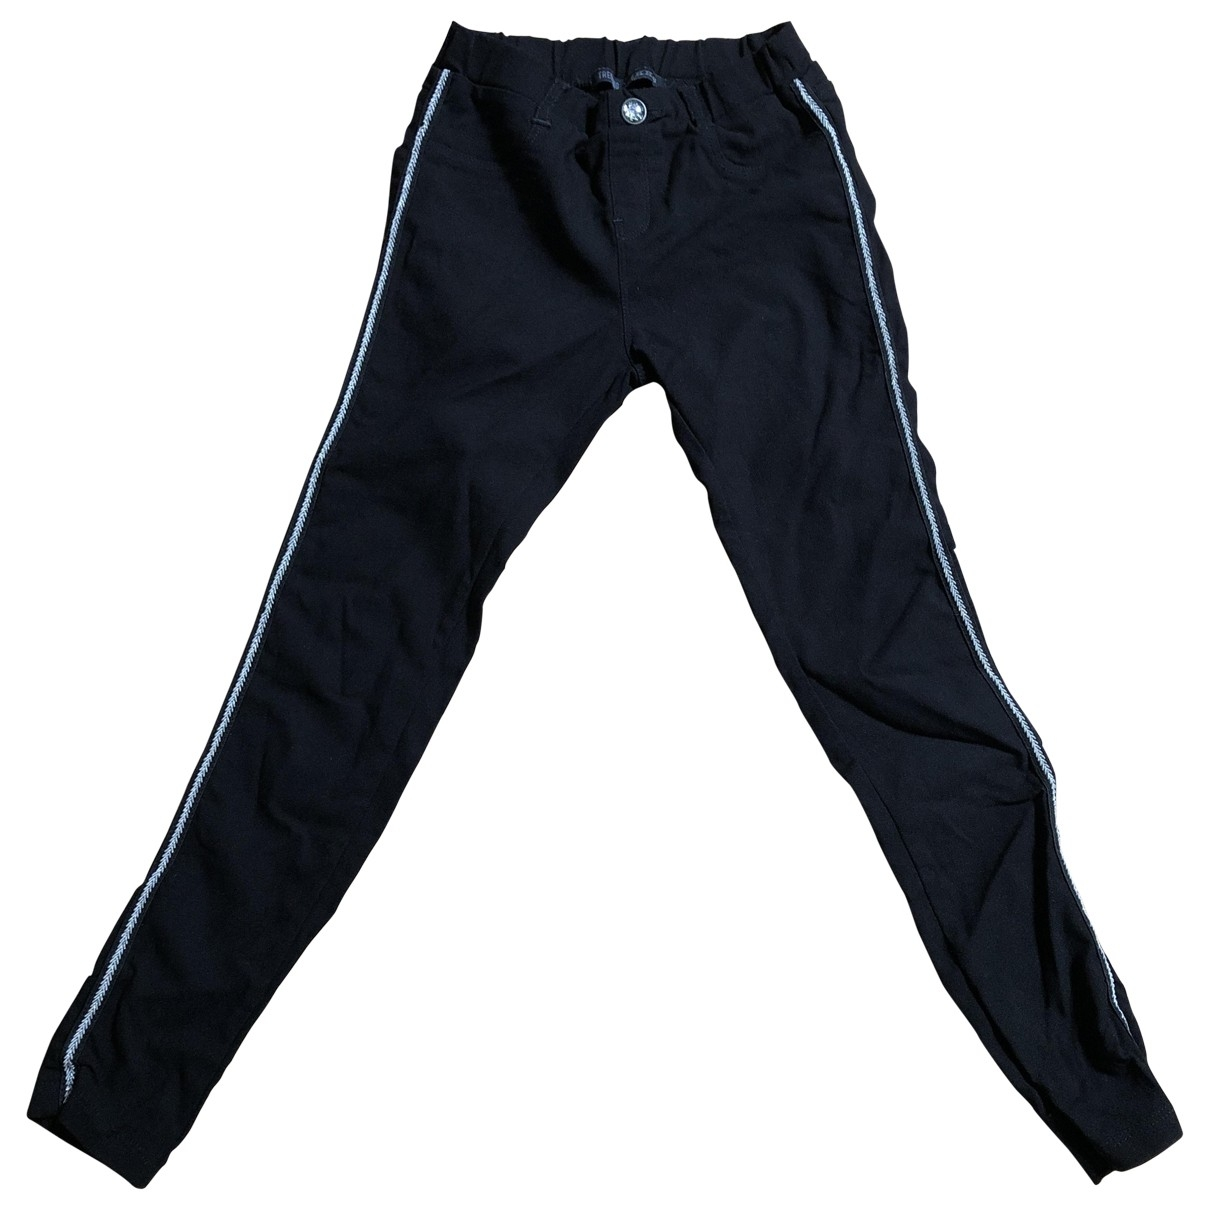 Ikks \N Black Trousers for Kids 8 years - up to 128cm FR